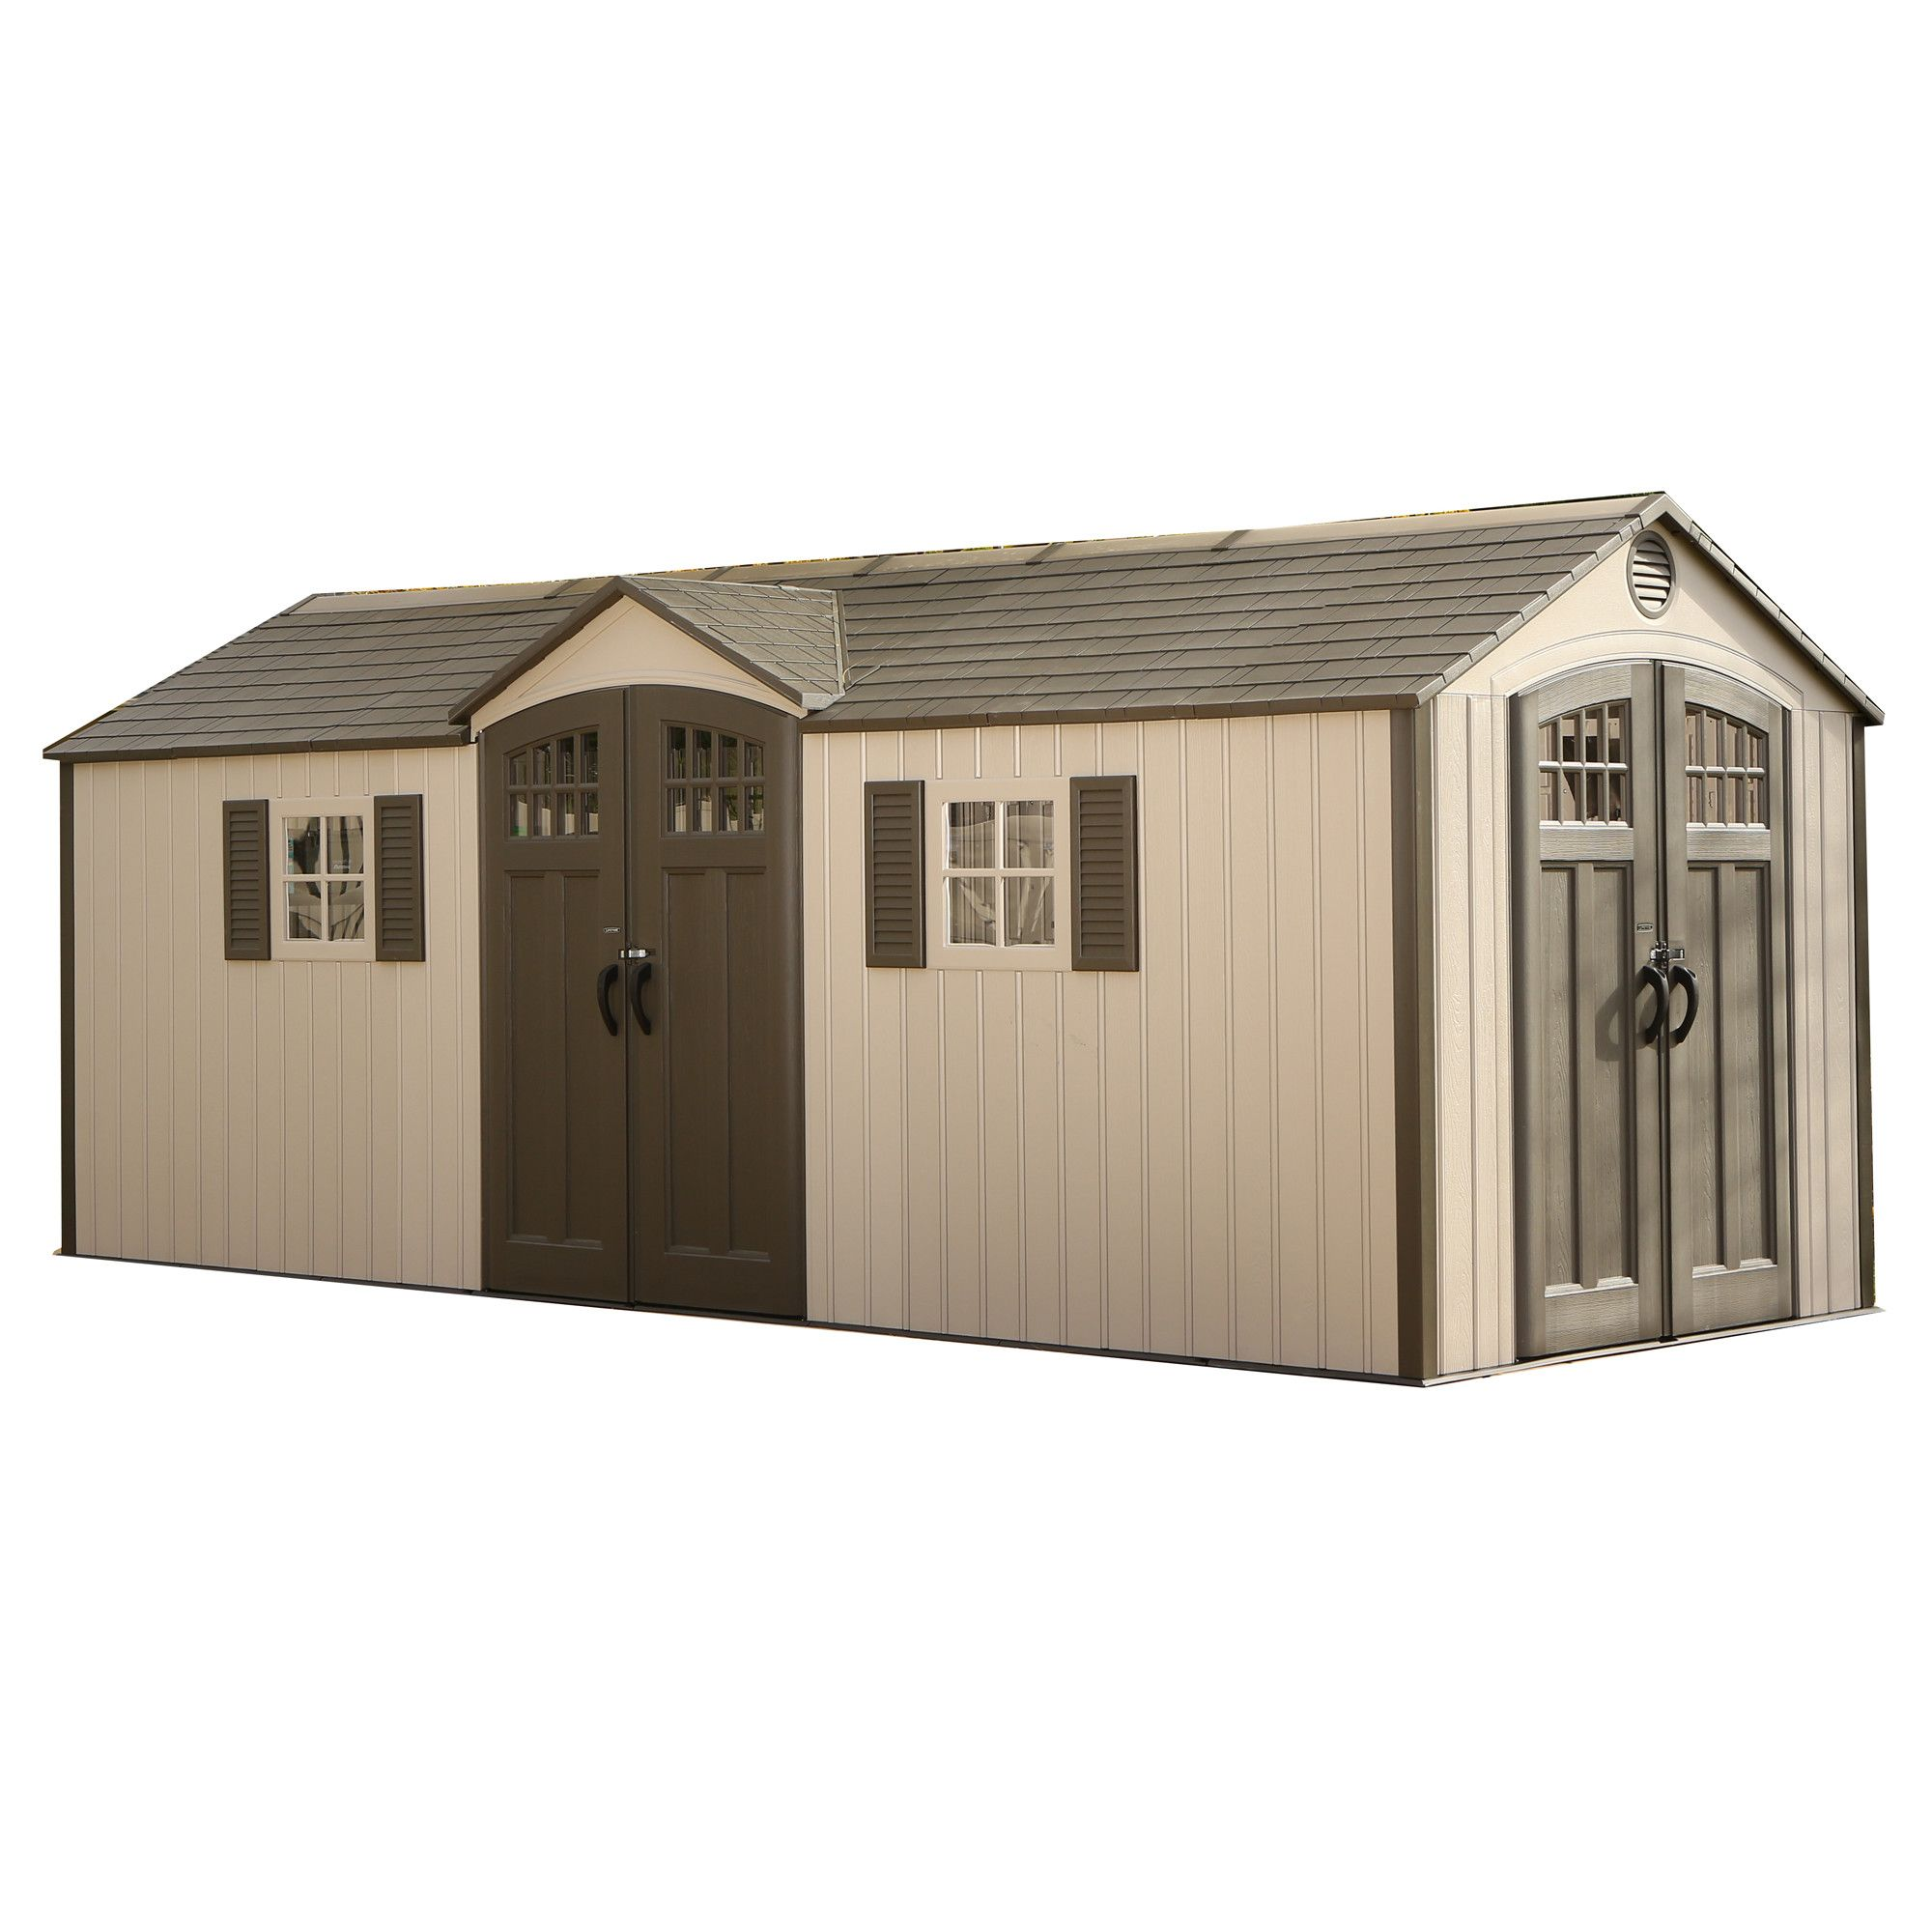 Add A Great Looking Lifetime Building To Your Backyard With This Lifetime Plastic  Storage Shed.